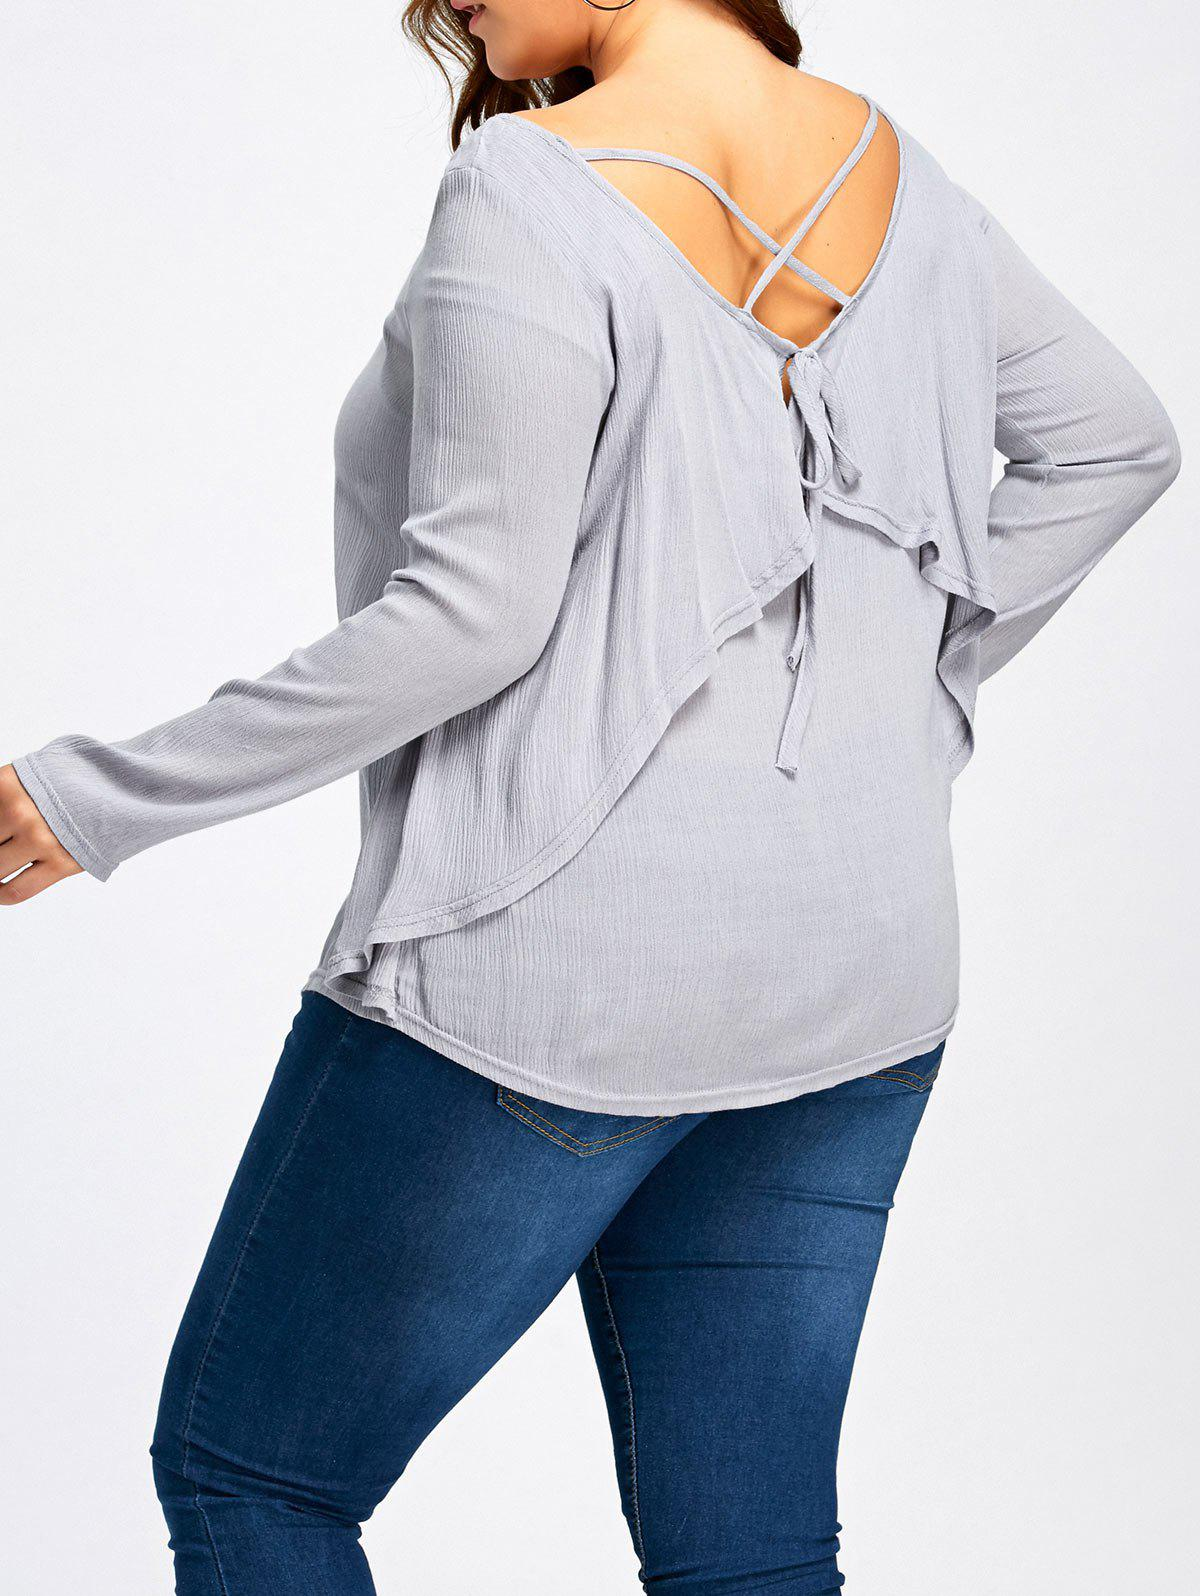 Plus Size Criss Cross Ruffle Bluse